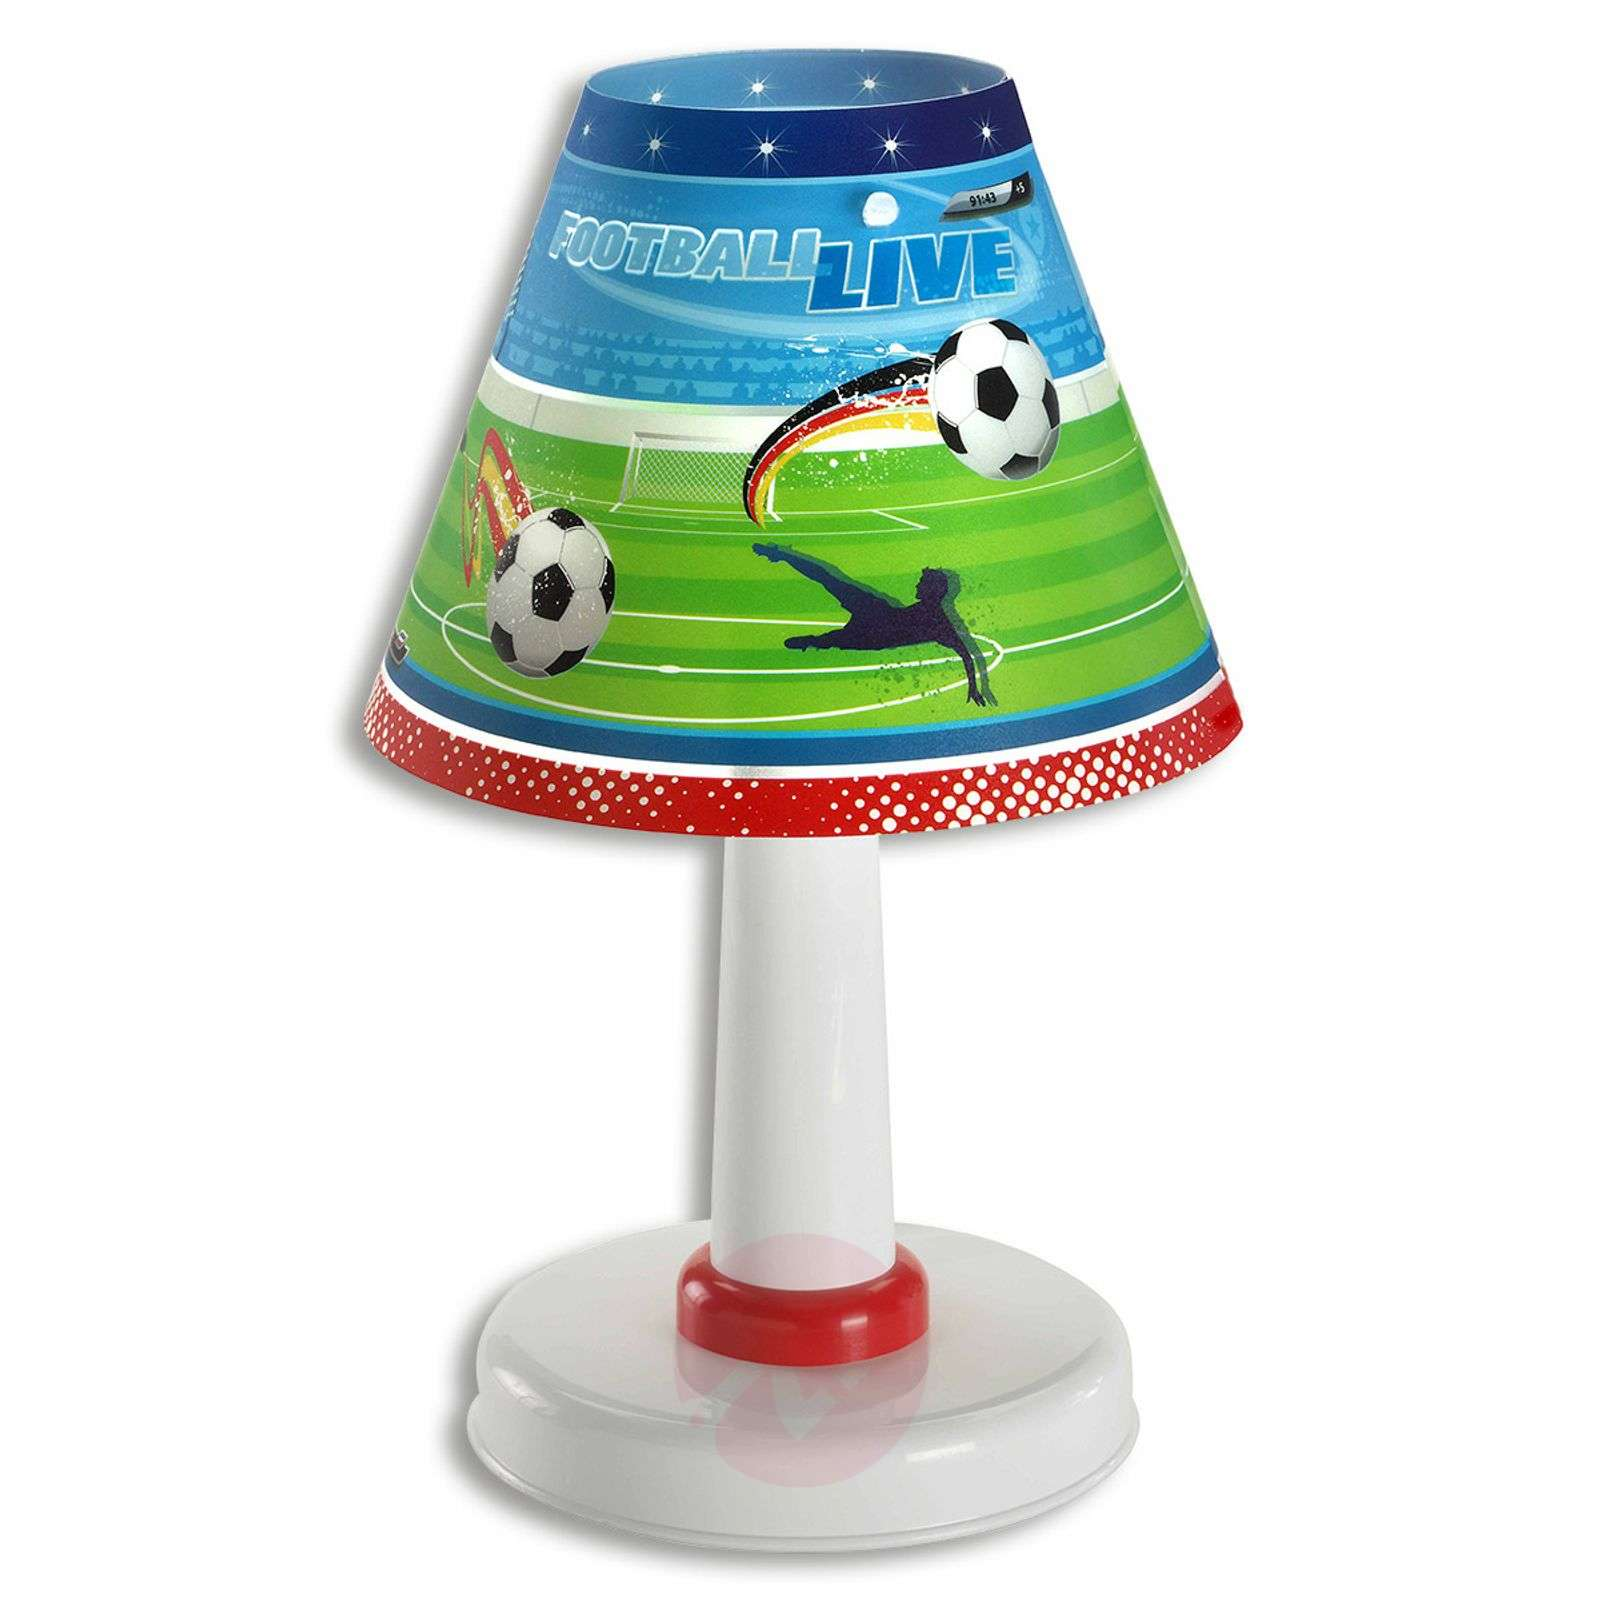 Kinderkamer-tafellamp Football-2507276-01